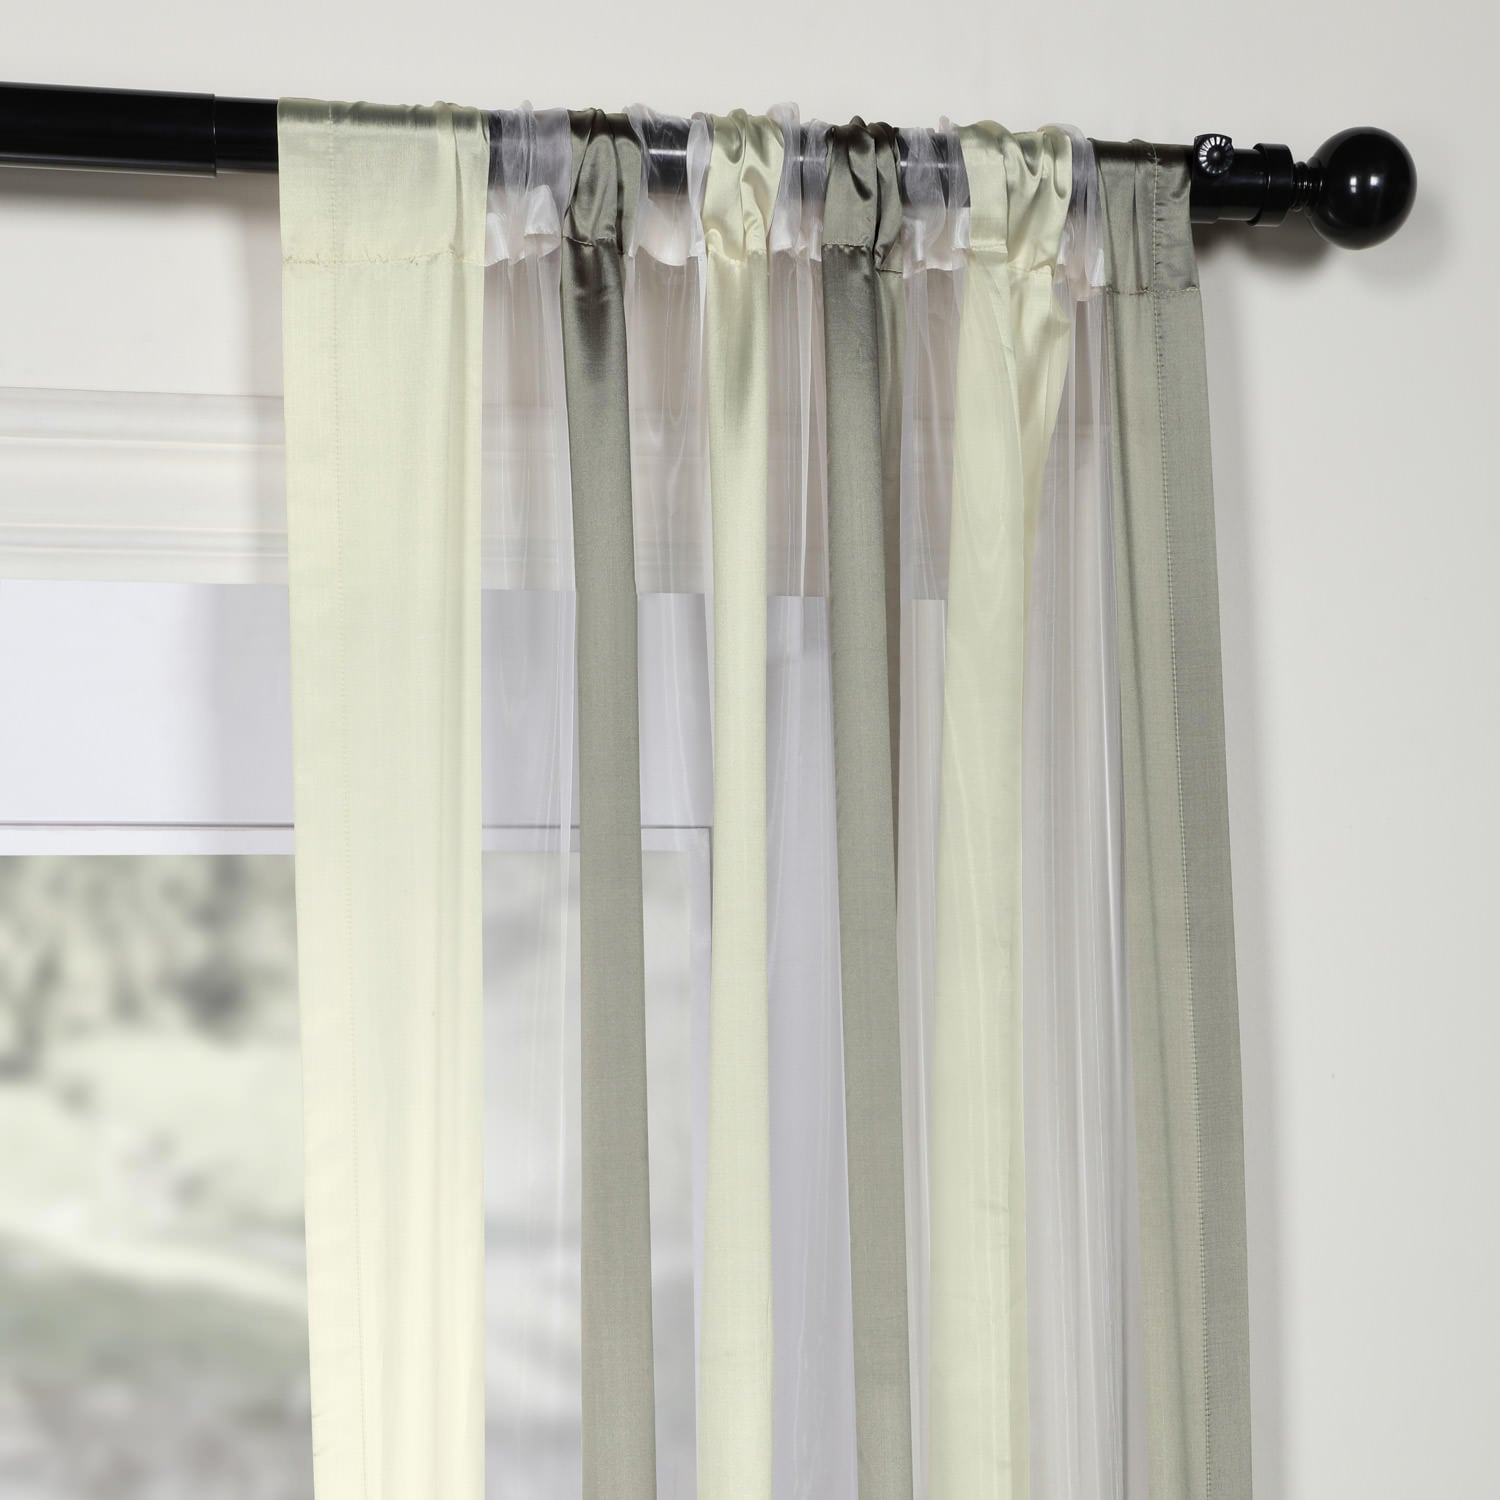 Laquered Silver Amp White Organza Stripe Sheer Curtain